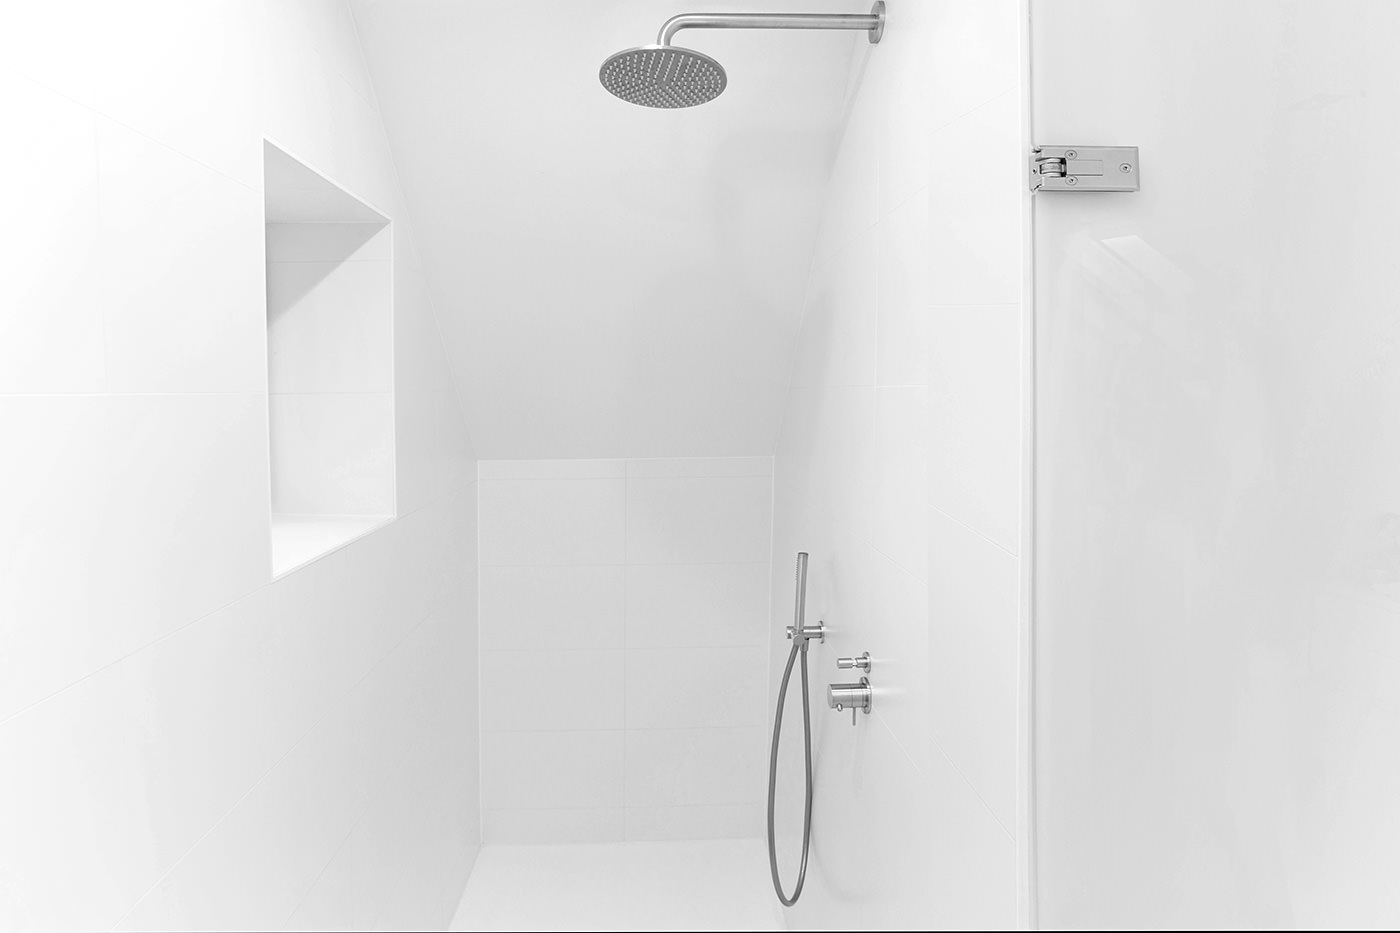 Cocoon-renovate-shower-room-small-shower-room-stainless-steel-shower-set-bathroom-renovation-products